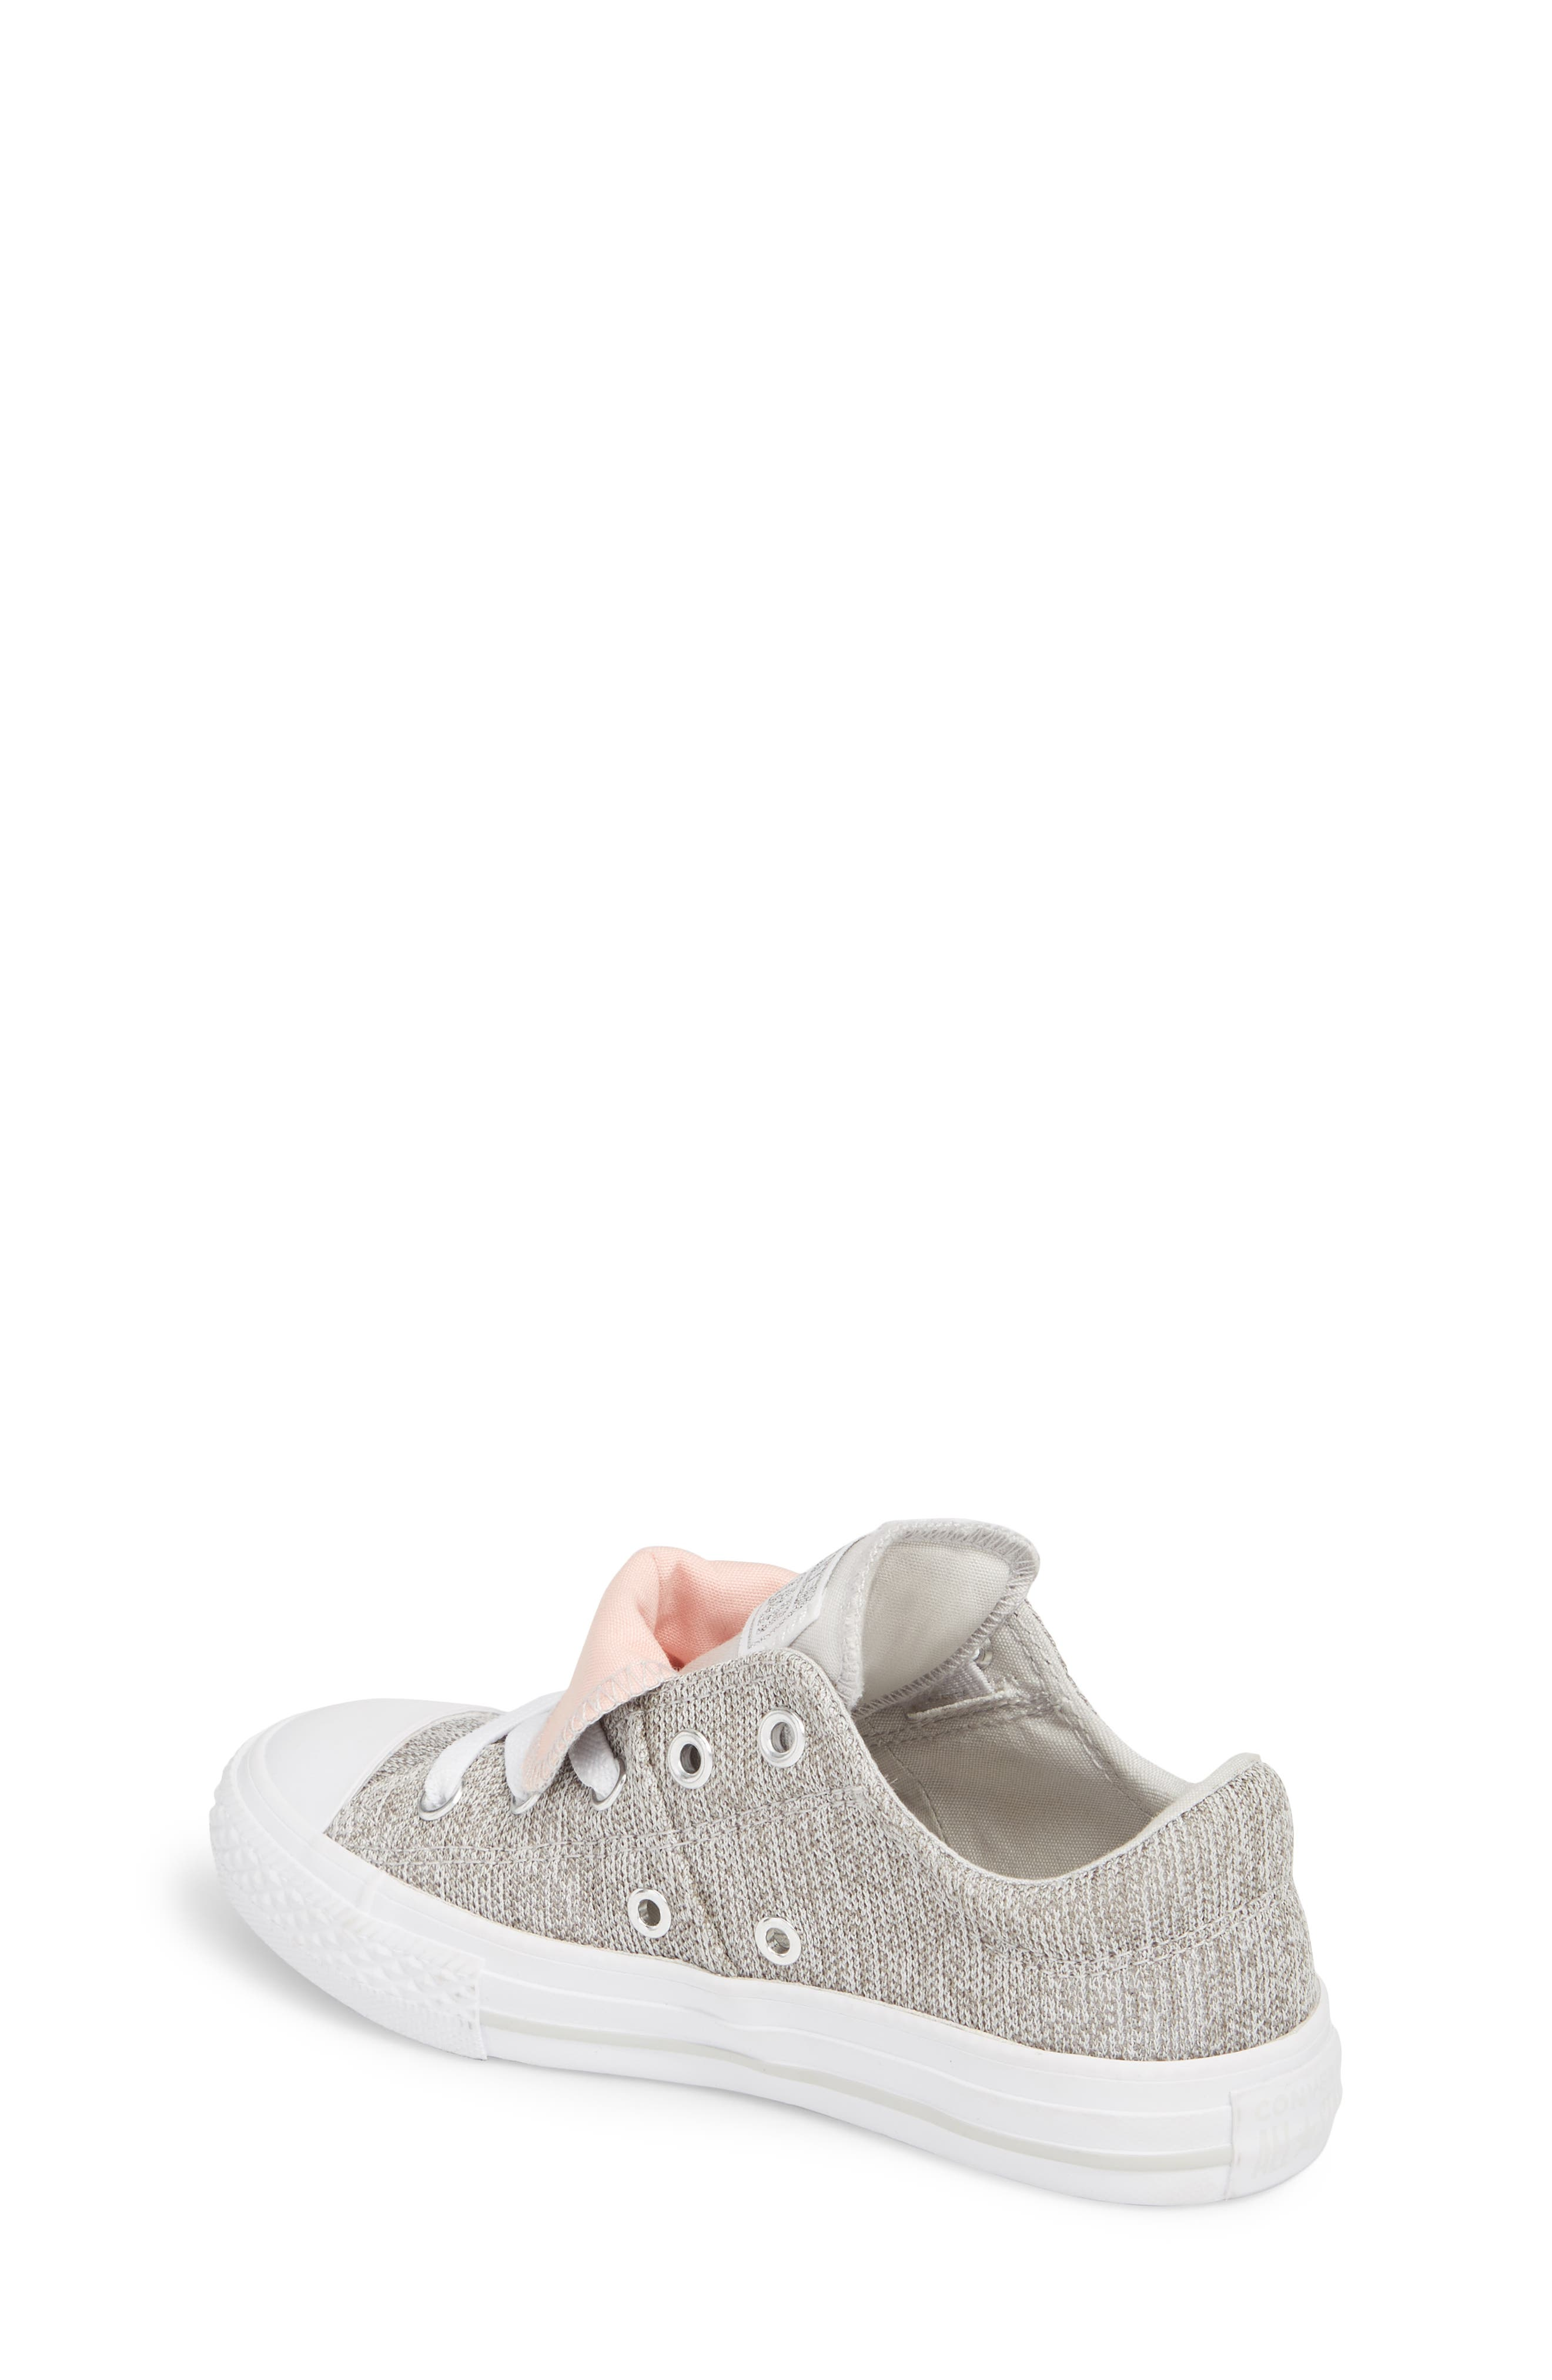 ,                             Chuck Taylor<sup>®</sup> All Star<sup>®</sup> Maddie Double Tongue Sneaker,                             Alternate thumbnail 14, color,                             050